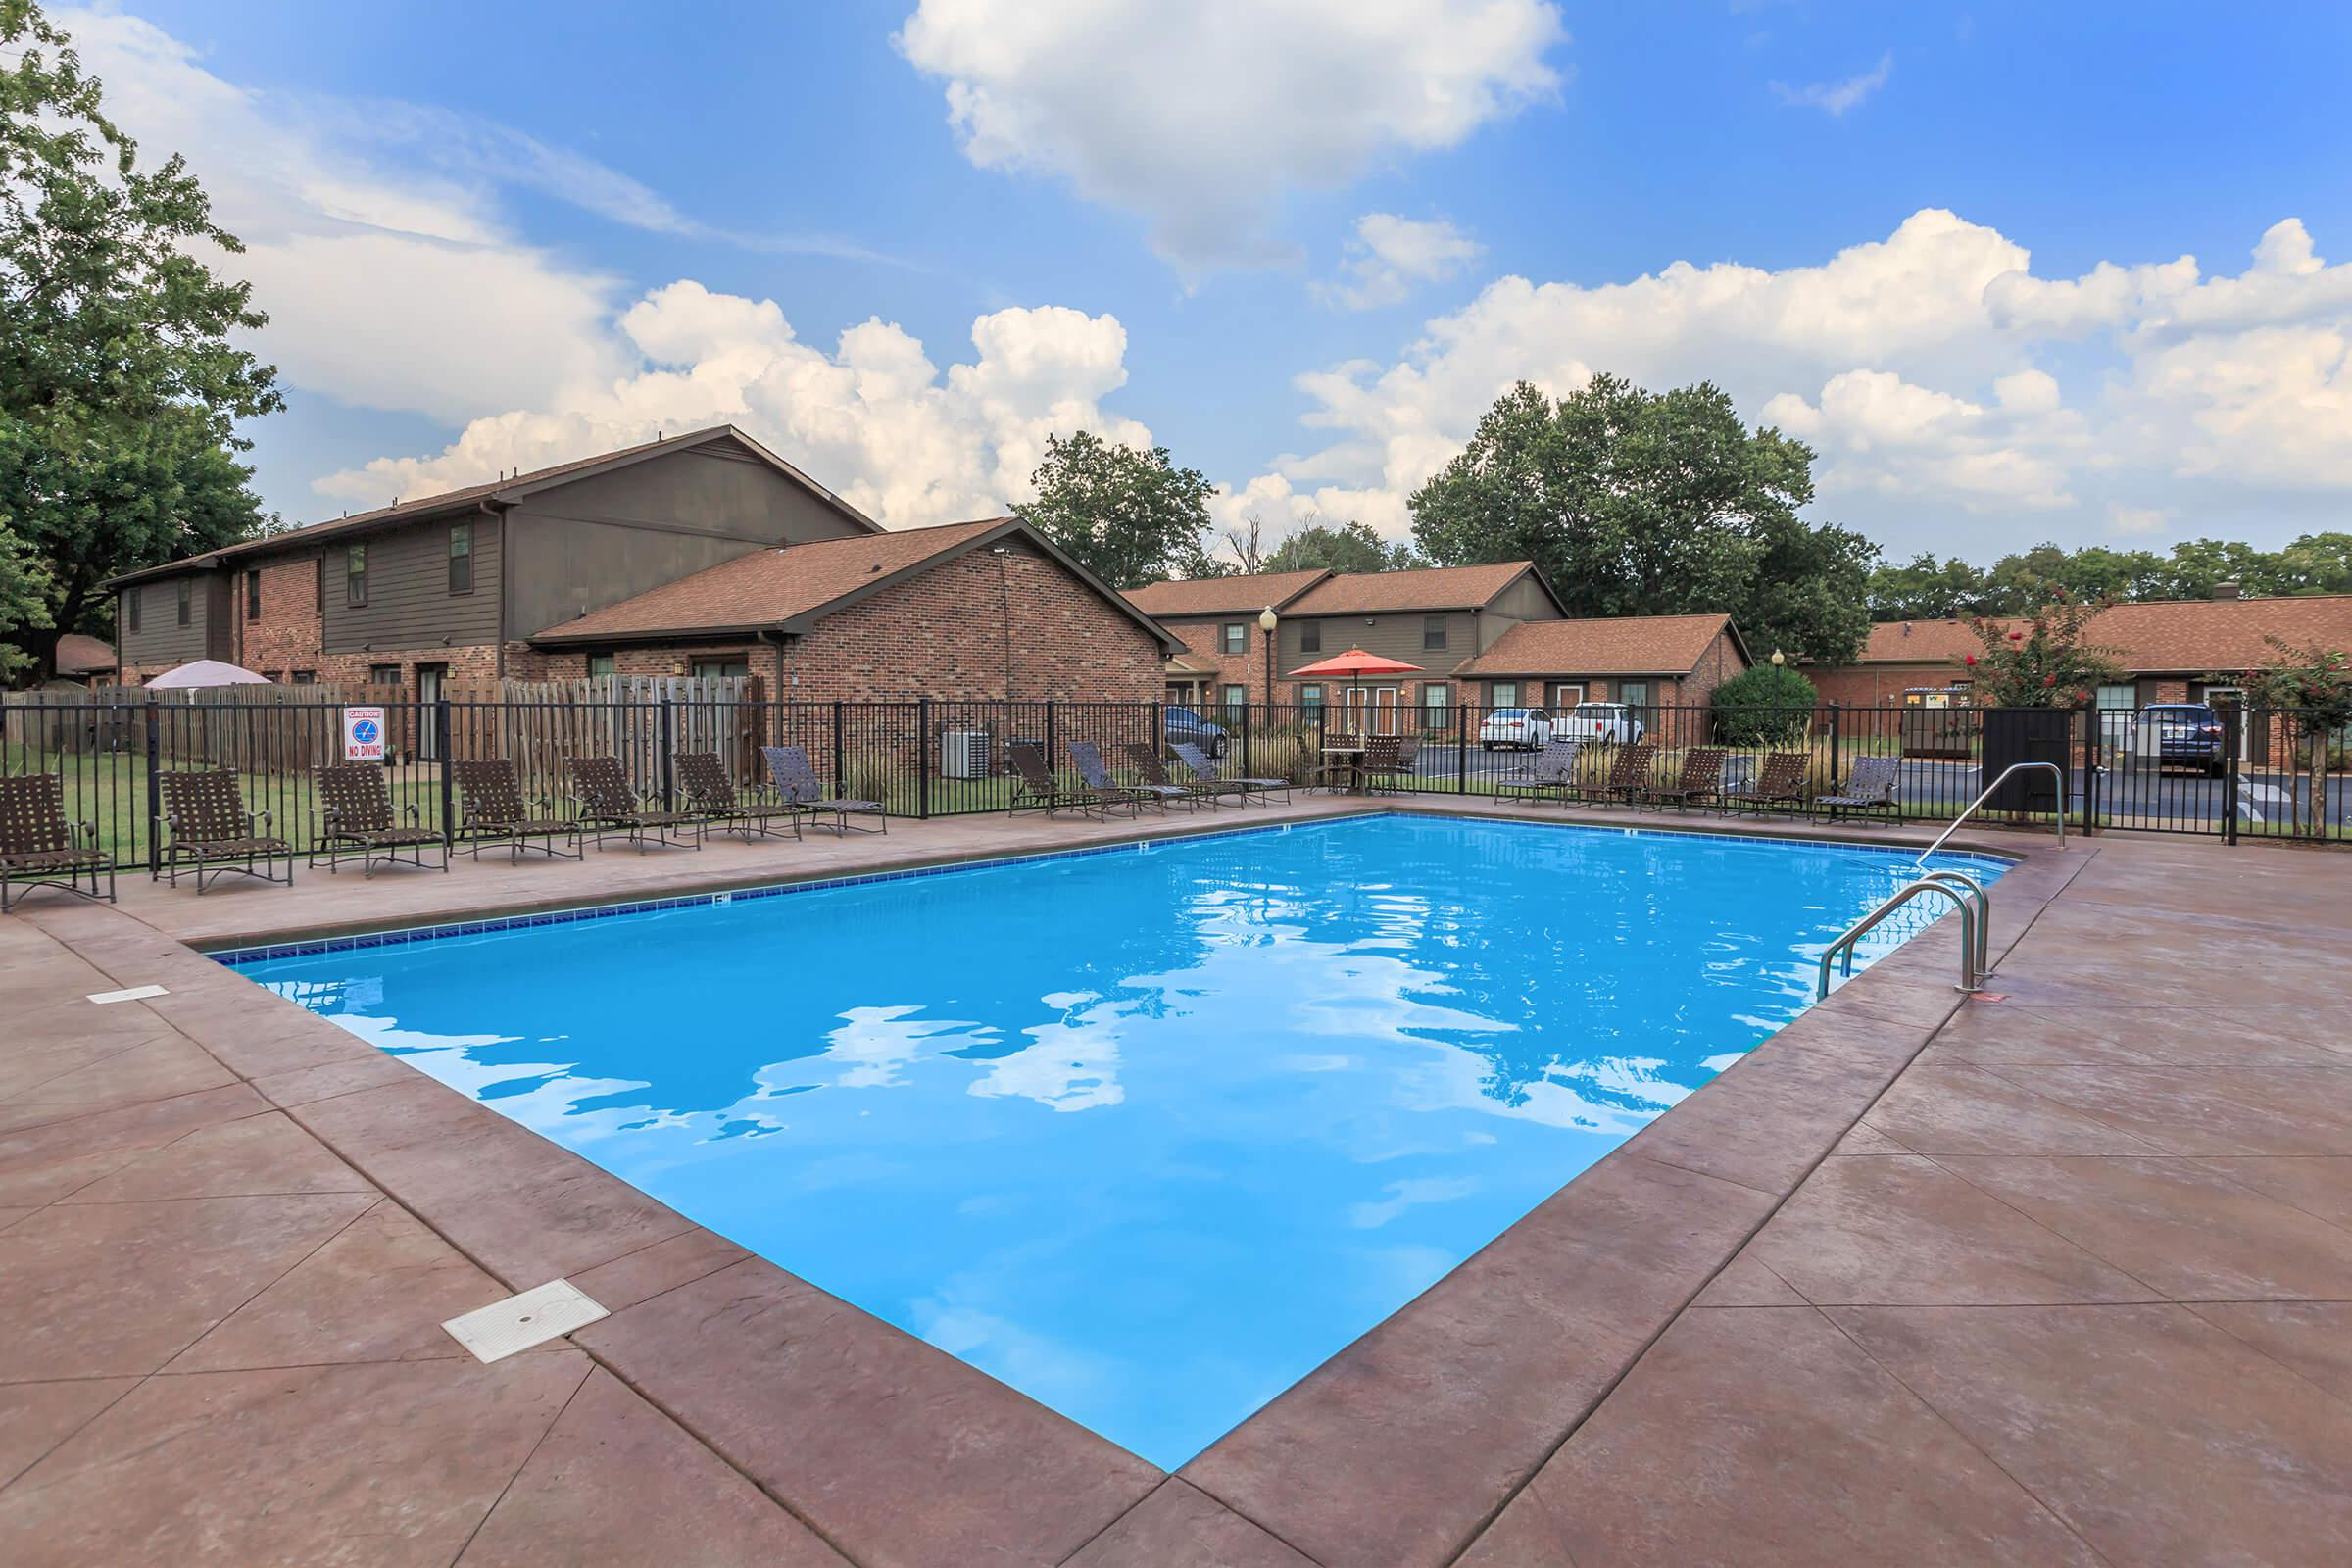 Swimming Pool with Sundeck at Murfreesboro, Tennessee